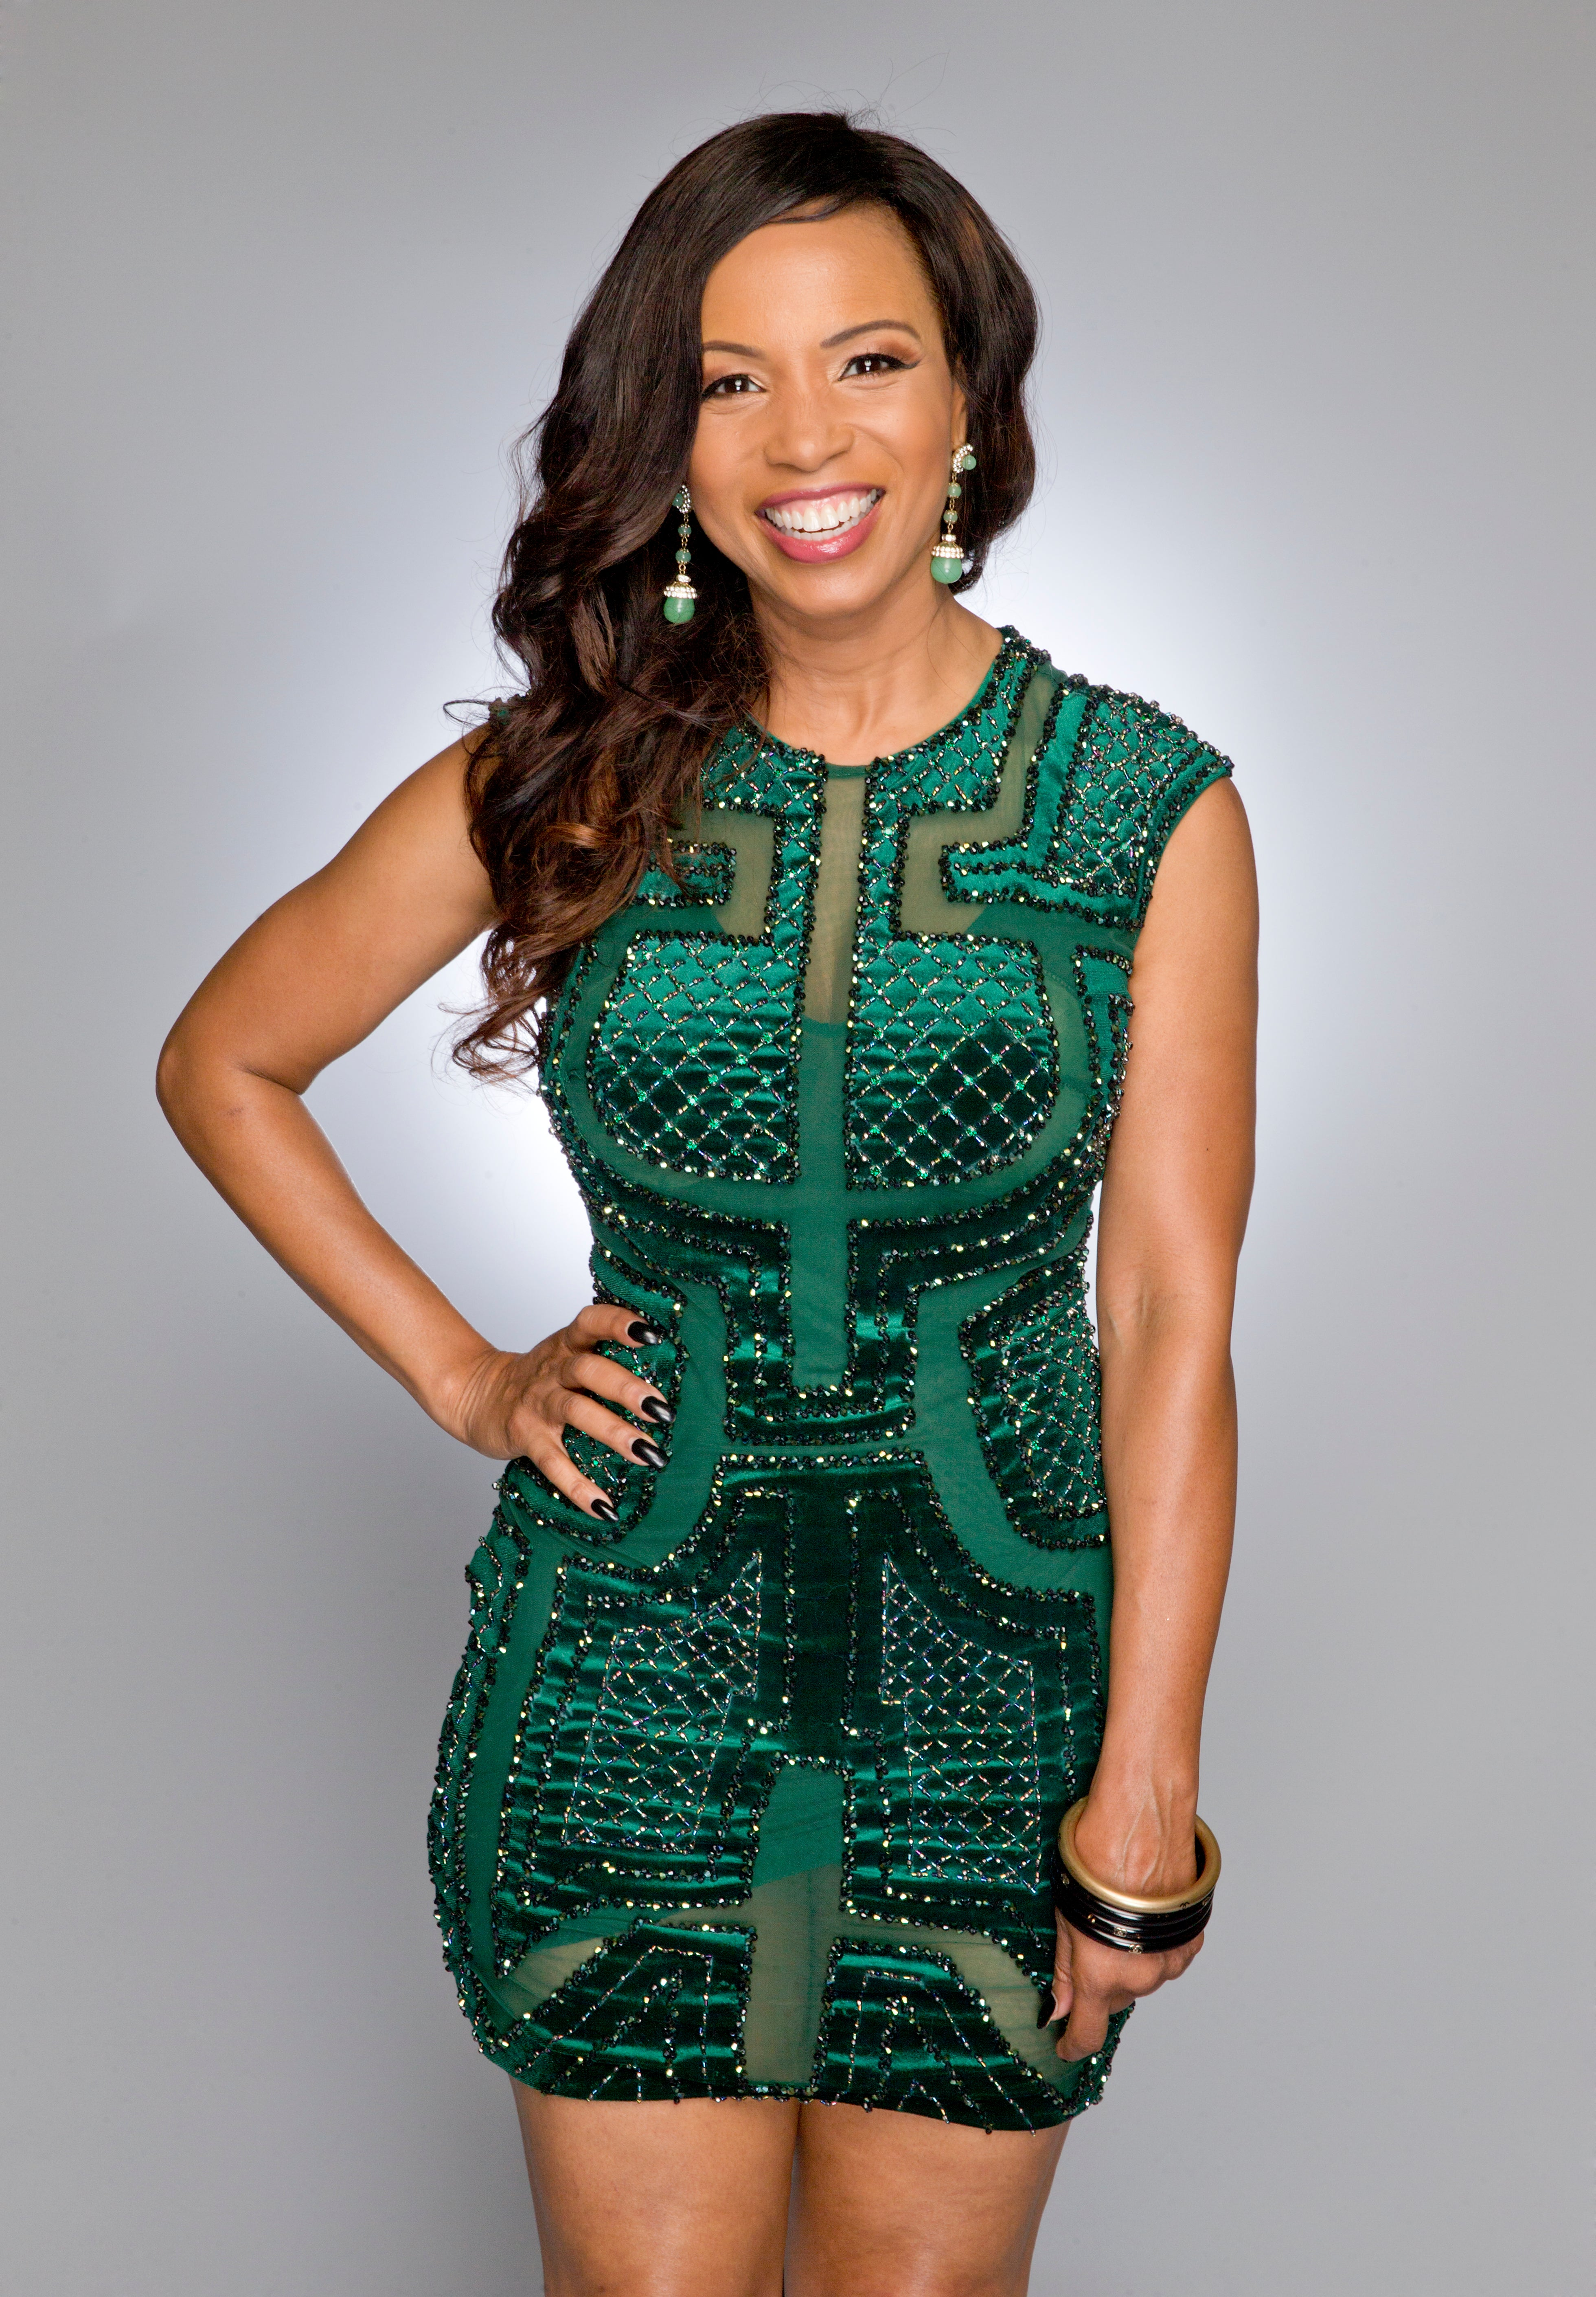 Hairstyle File: Elise Neal Talks New Hair Extensions Collection